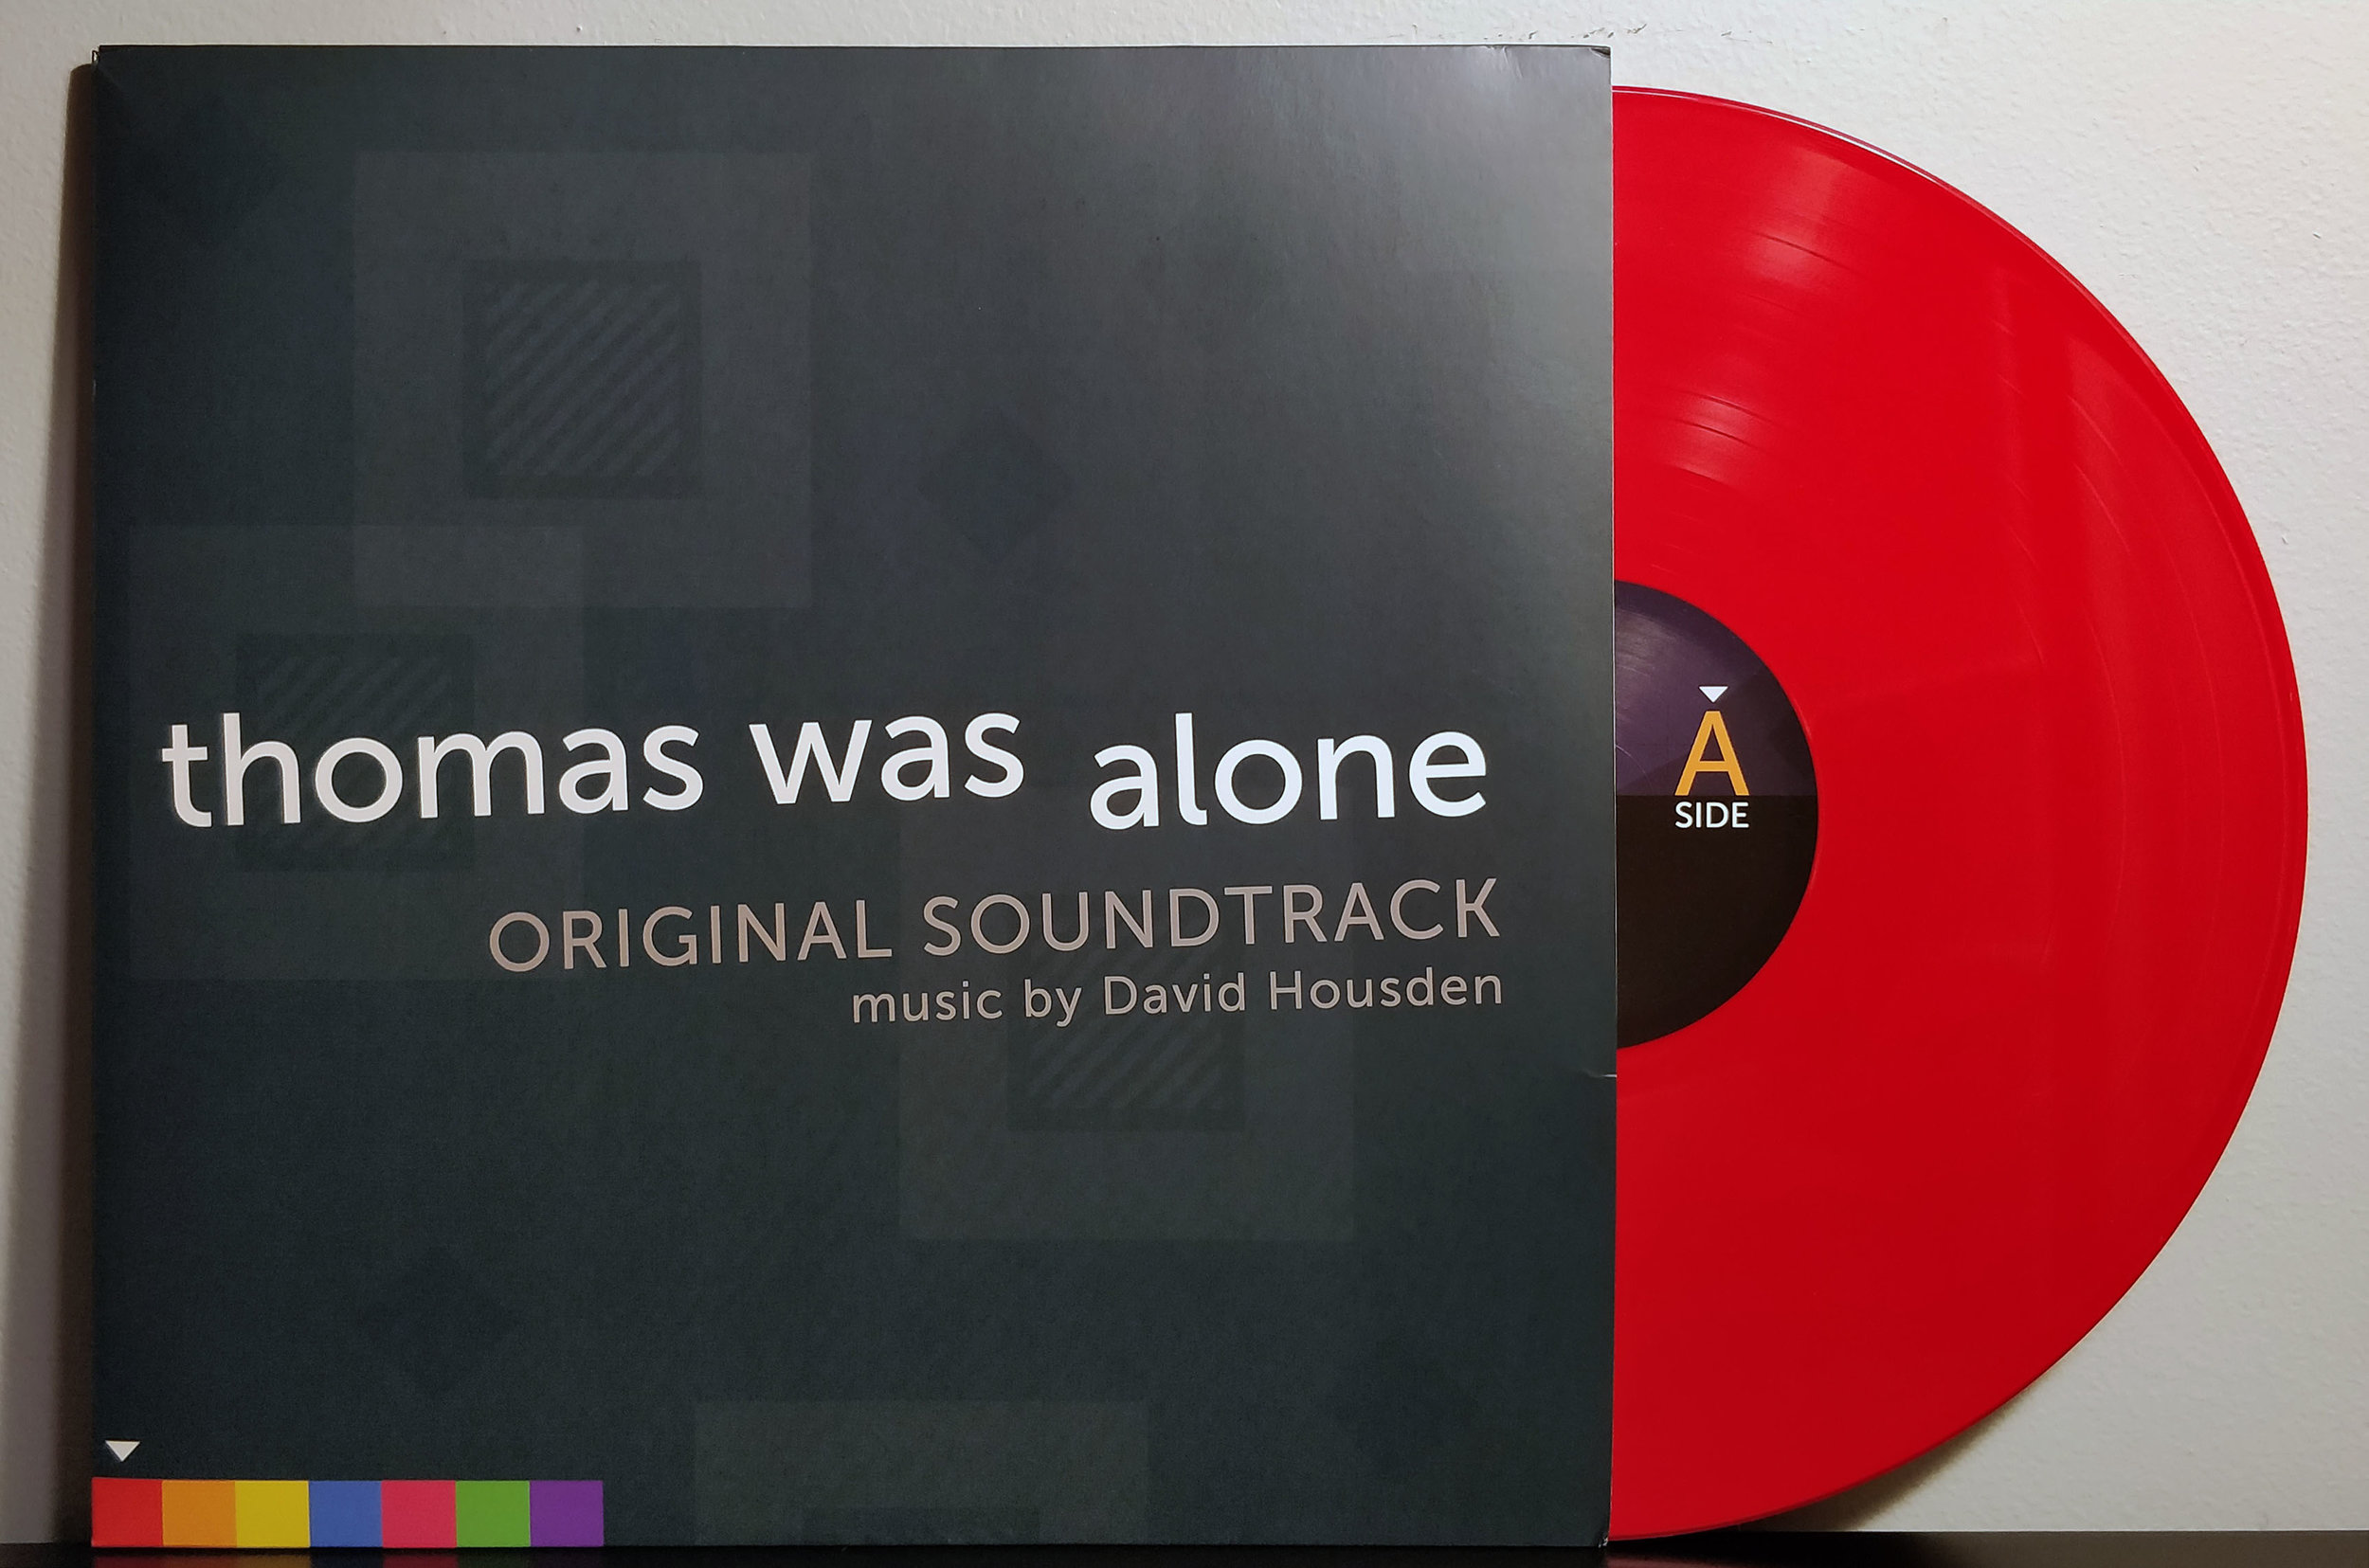 Thomas Was Alone by David Housden pressed on red vinyl by Black Screen Records